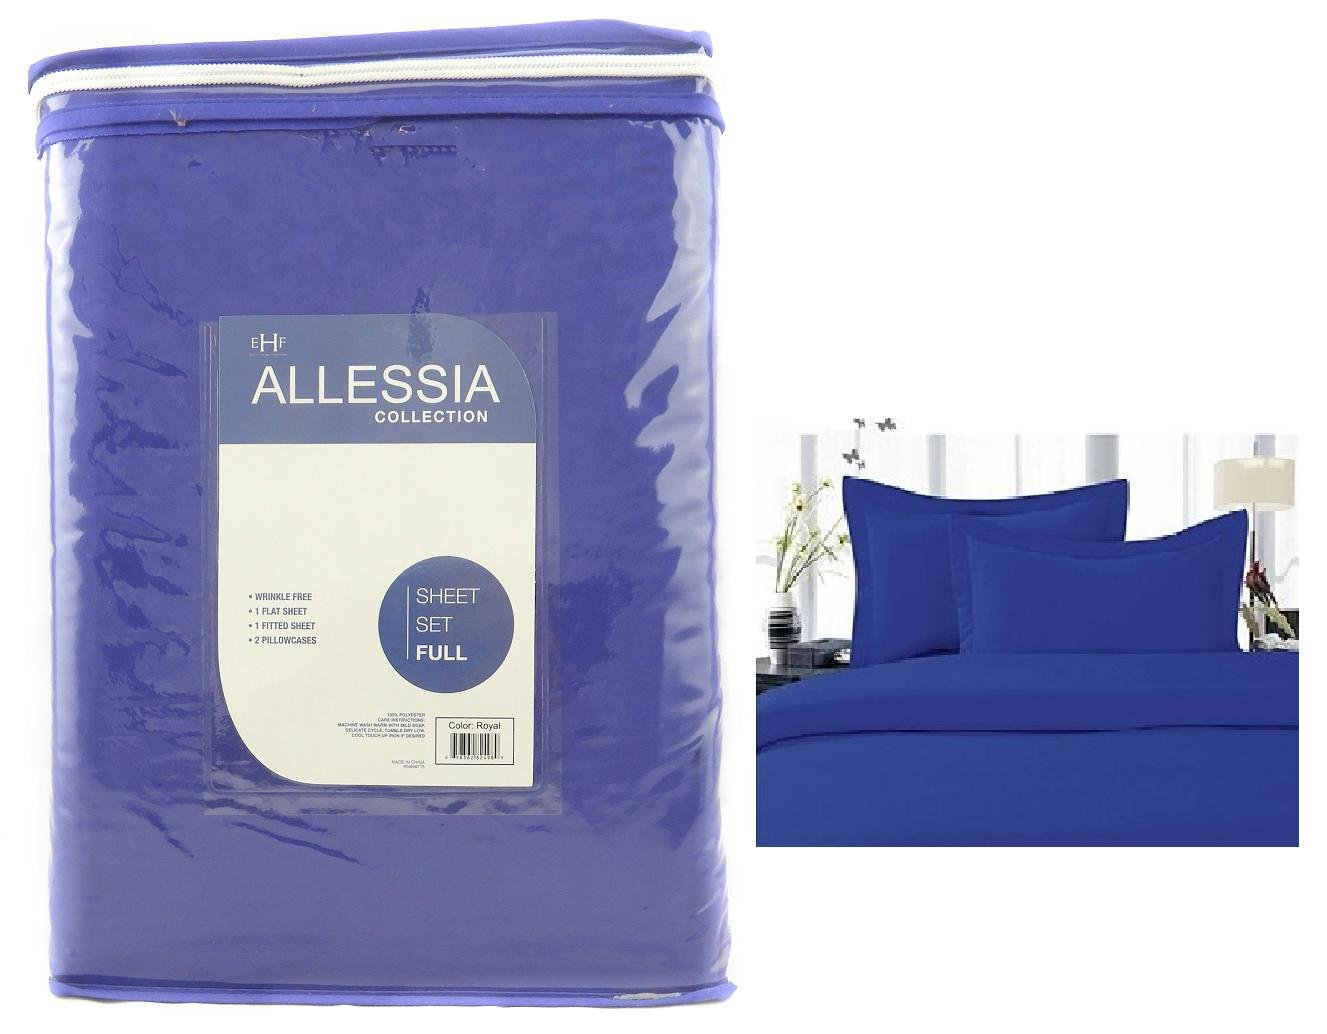 Allesia Collection Royal Blue Full Size Sheet Set Back To School College Dorm